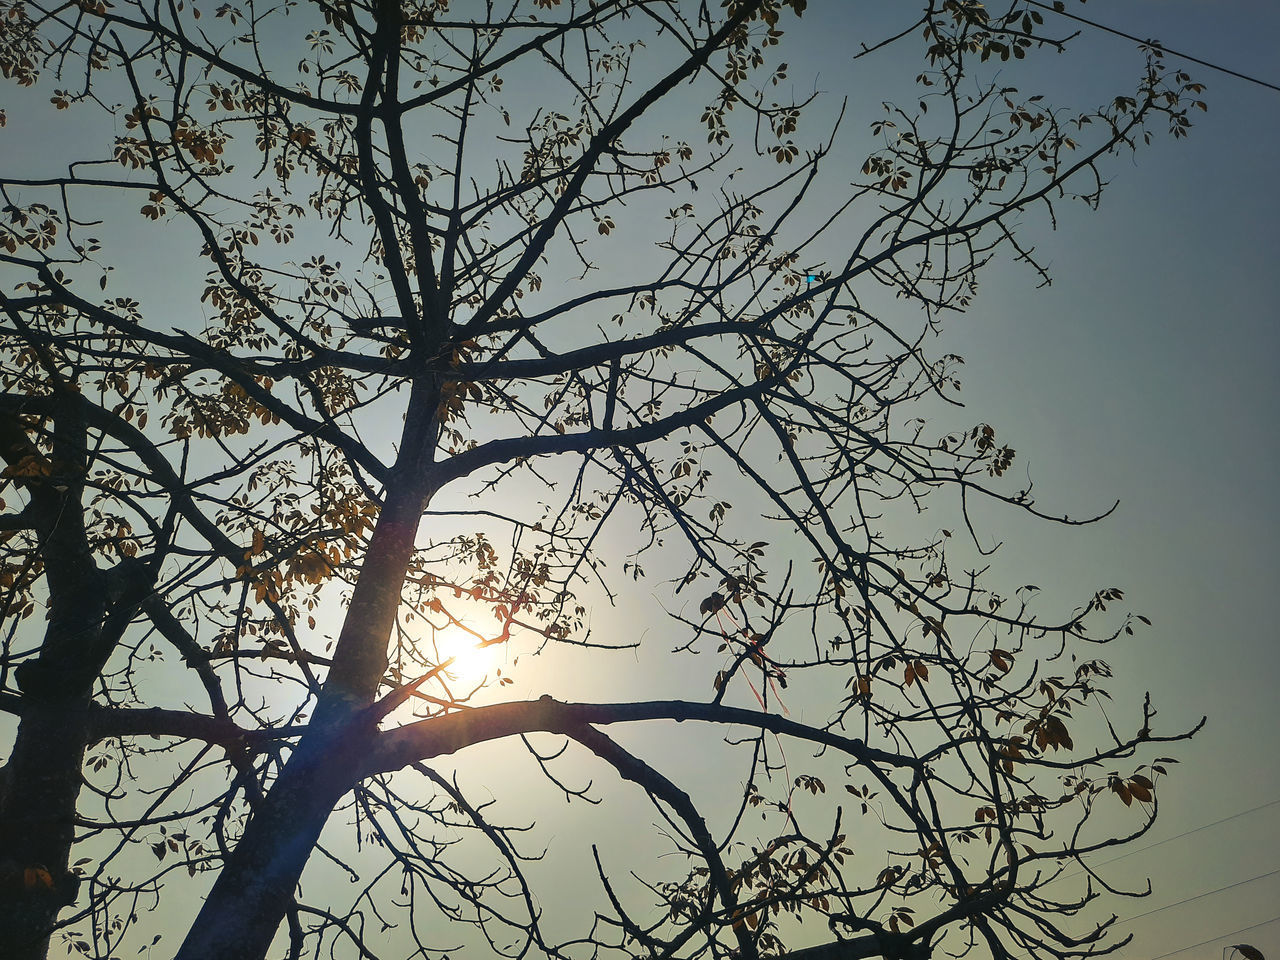 LOW ANGLE VIEW OF SUNLIGHT STREAMING THROUGH SILHOUETTE TREE